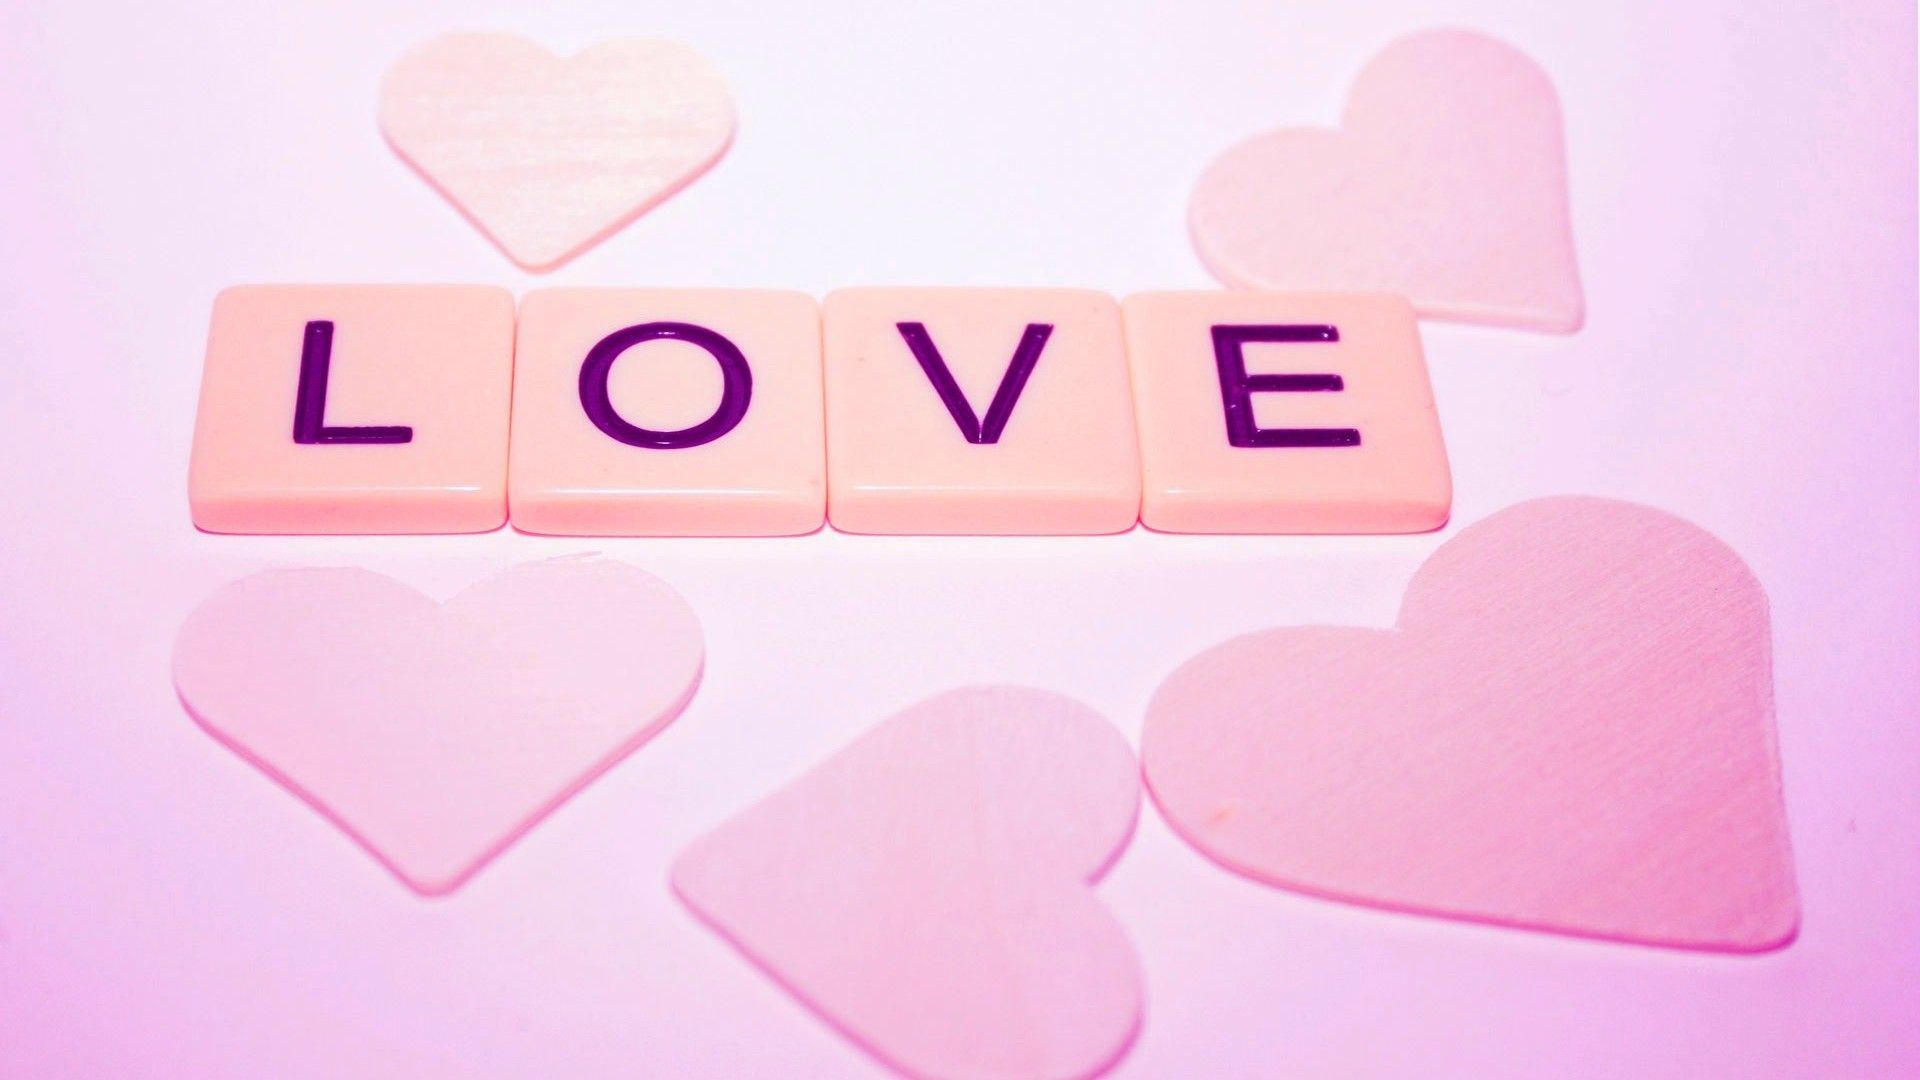 Cute Love Wallpaper Full Hd Download Desktop Mobile Backgrounds With Images Cute Love Wallpapers Love Pink Wallpaper Love Wallpaper